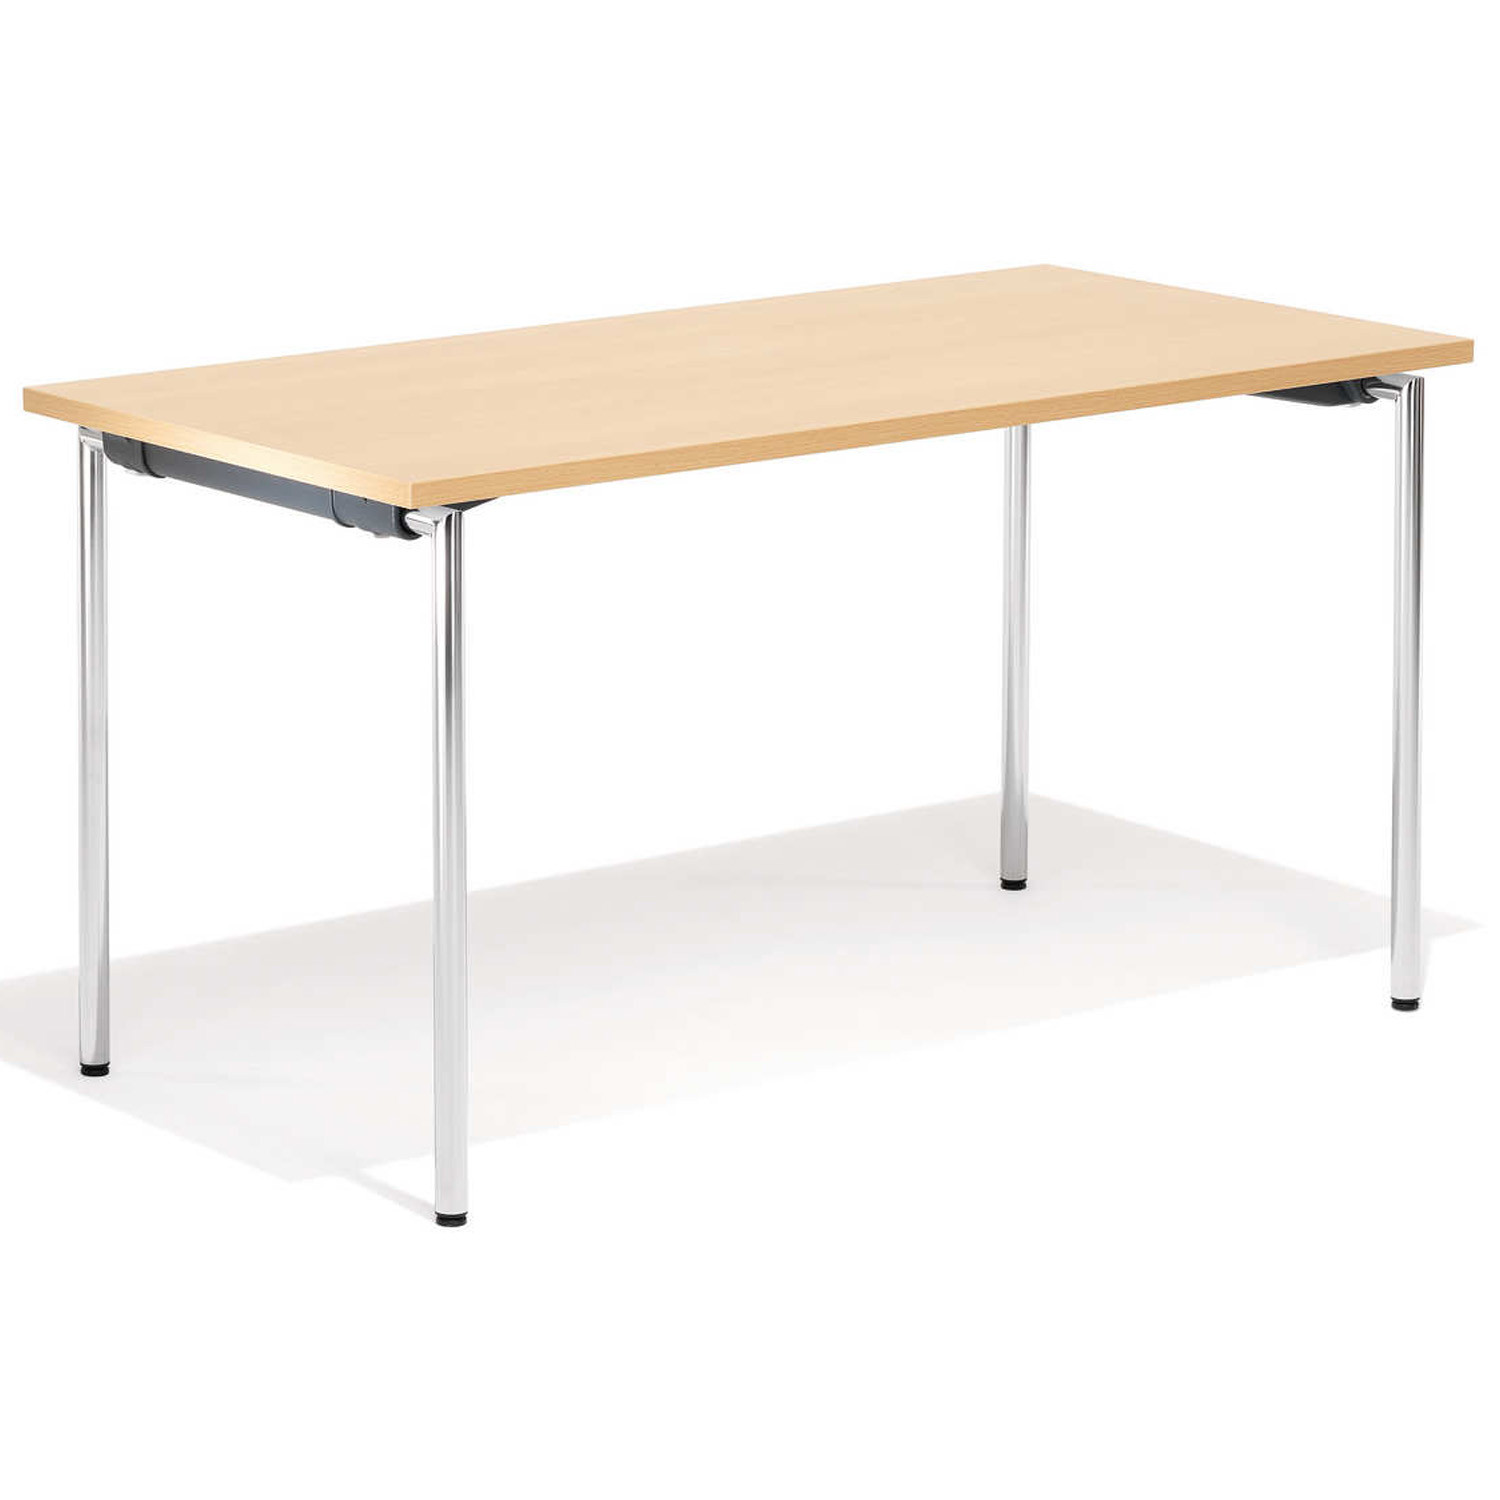 5000 Pliéto Rectangular Table